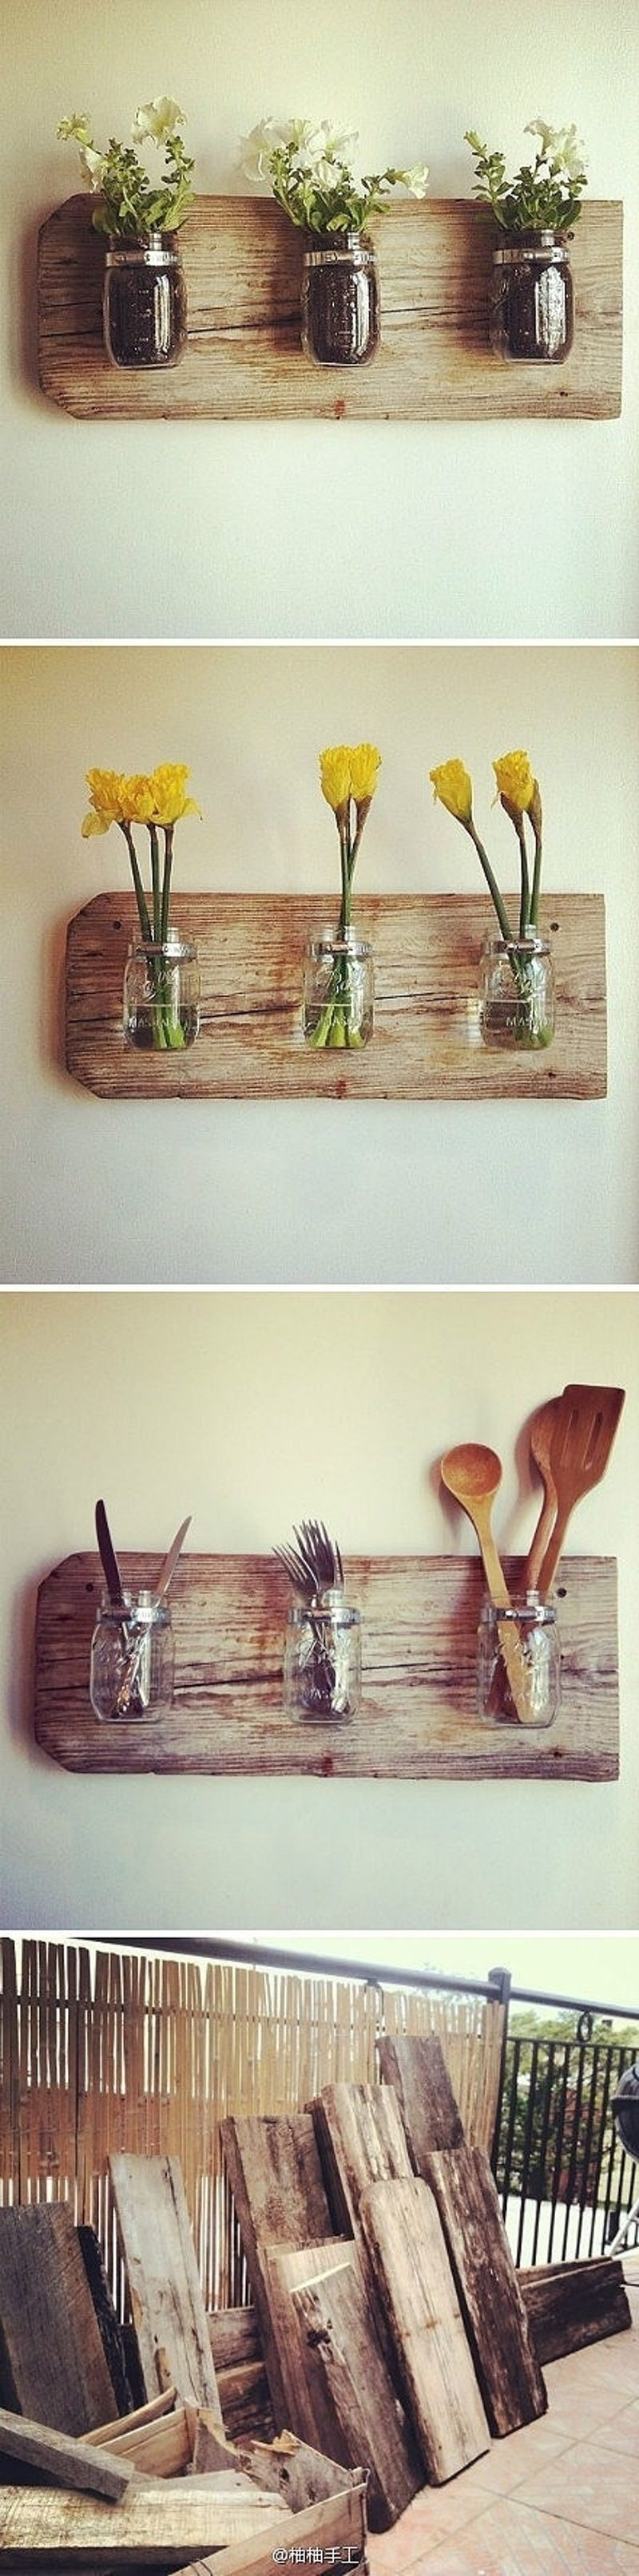 Diy home decor wood   Amazing DIY Home Decor Projects to Spruce up Your Space